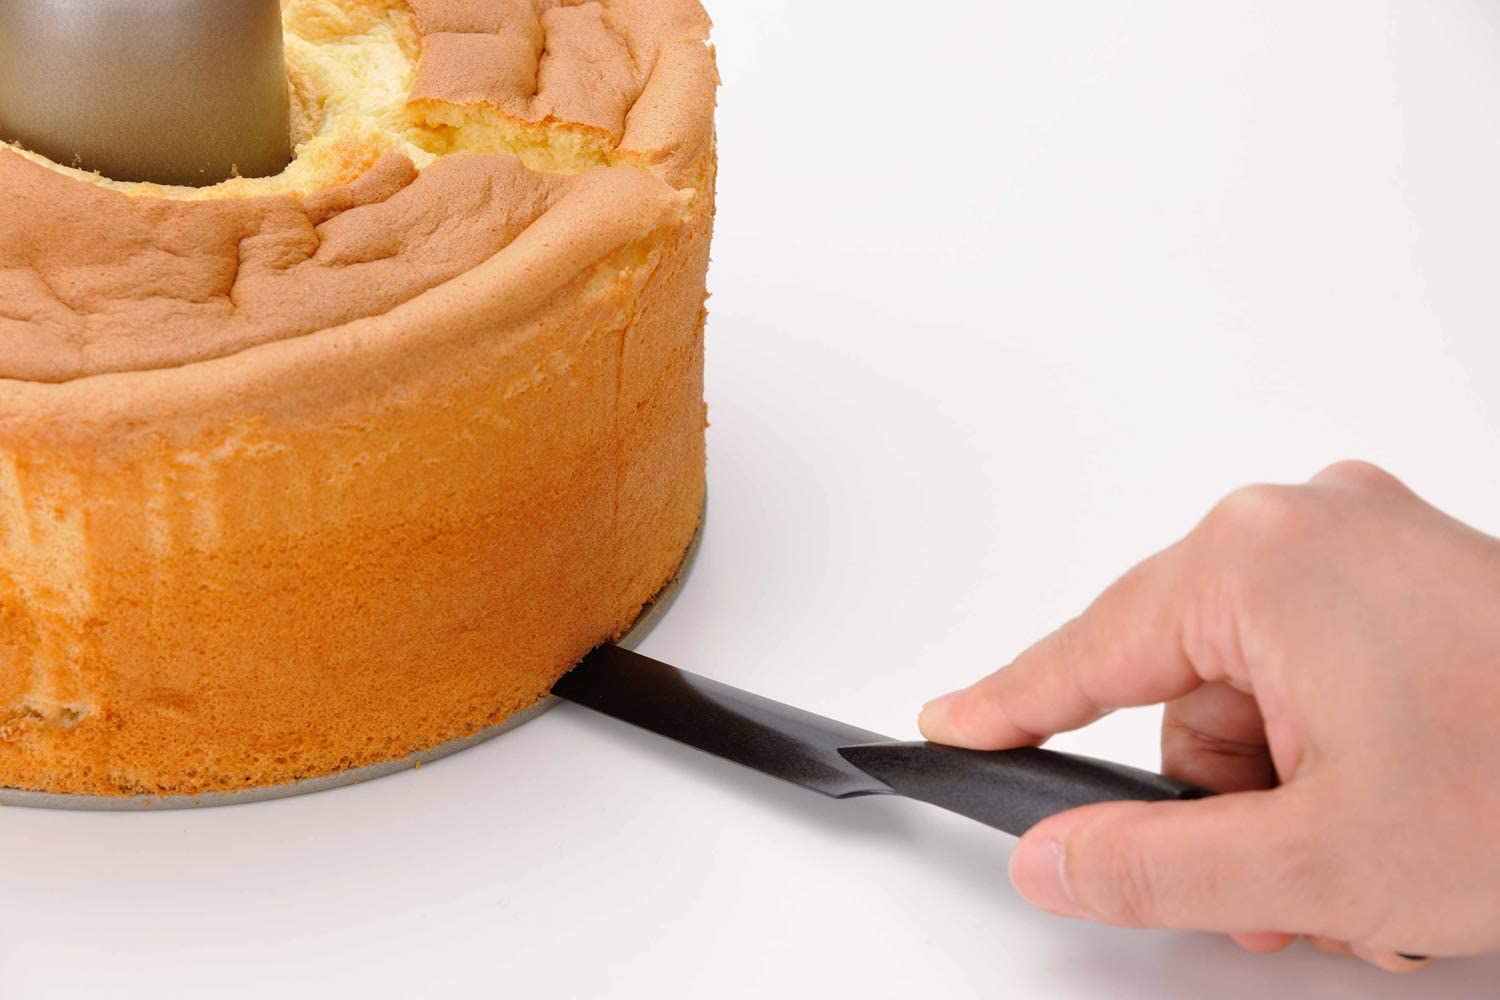 Amazon.com | Chiffon Cake Knife Black: Serving Utensils